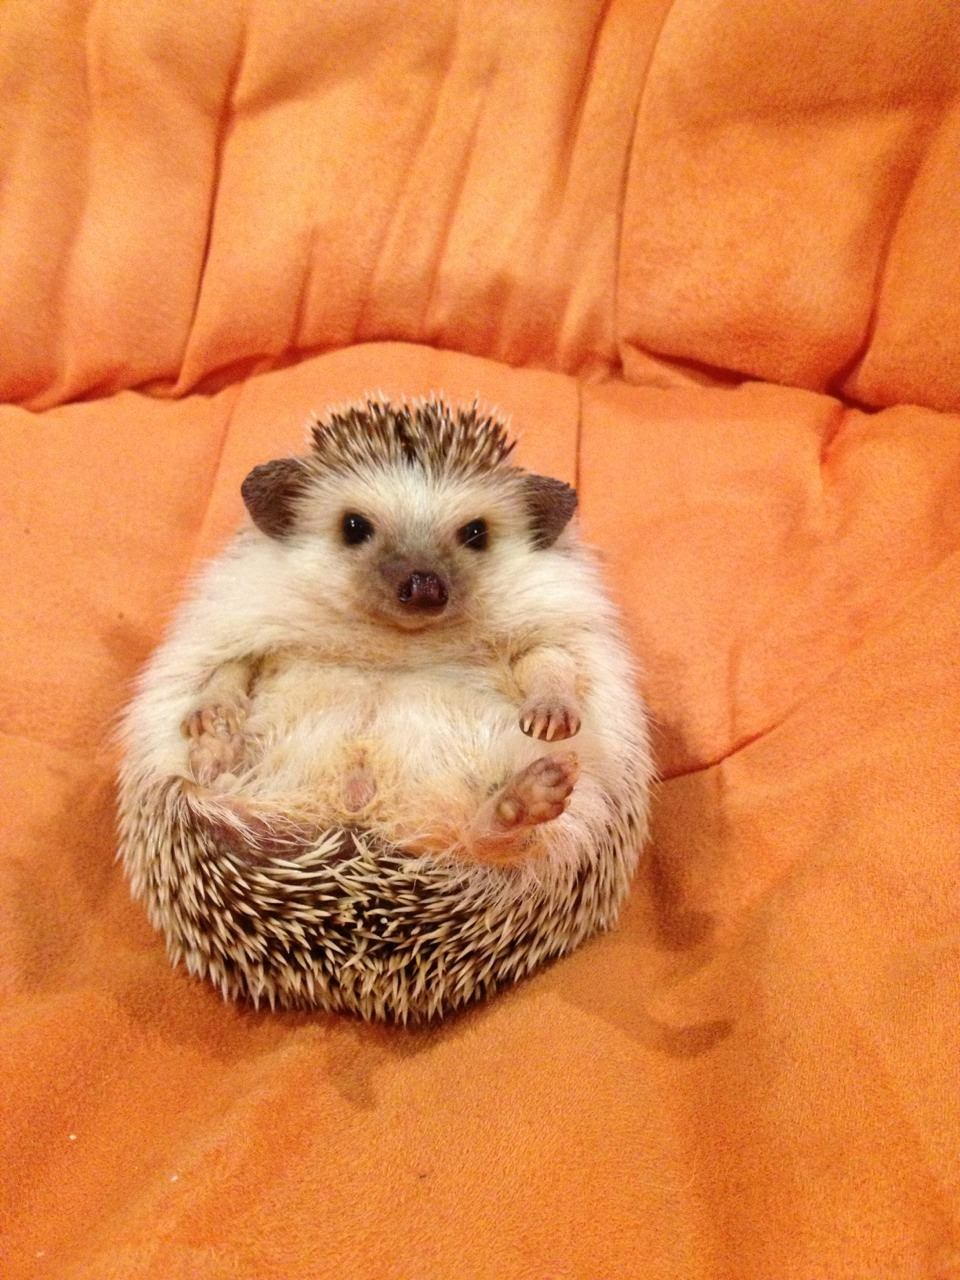 gottalovehedgehogs:  Excuse me but this seat is taken.